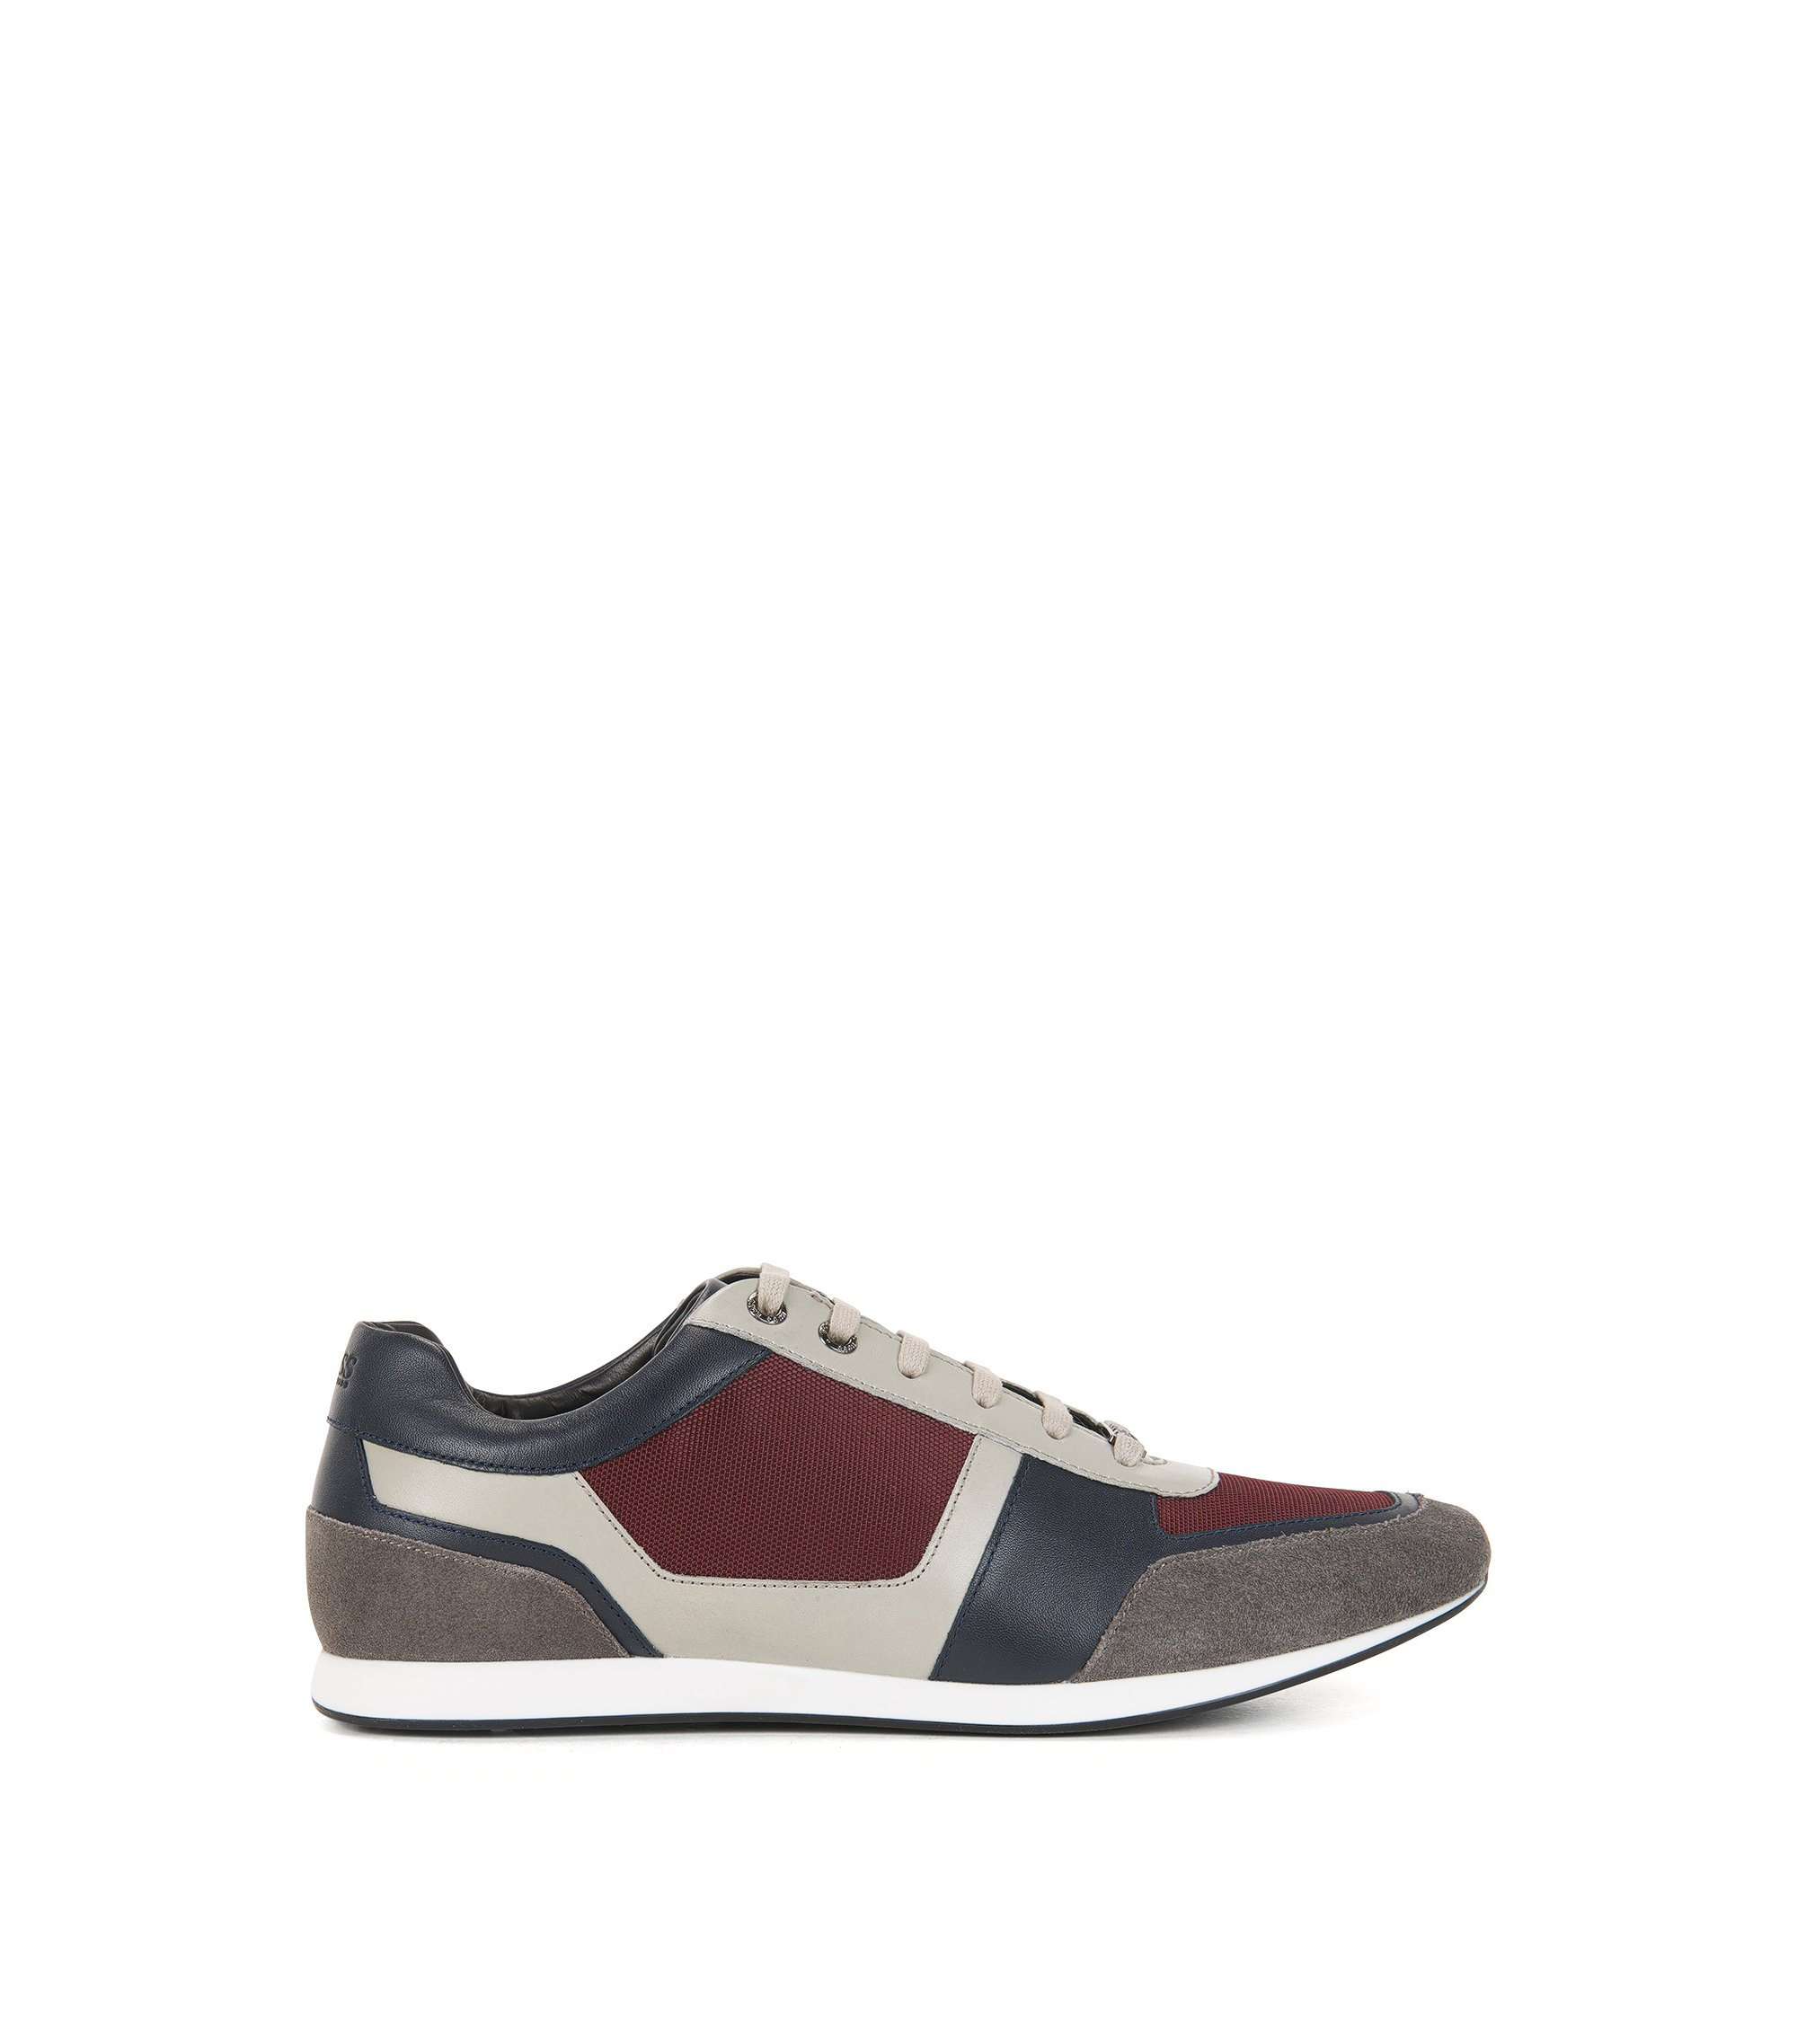 Leather & Suede Sneaker | Fulltime Lowp Mx, Red